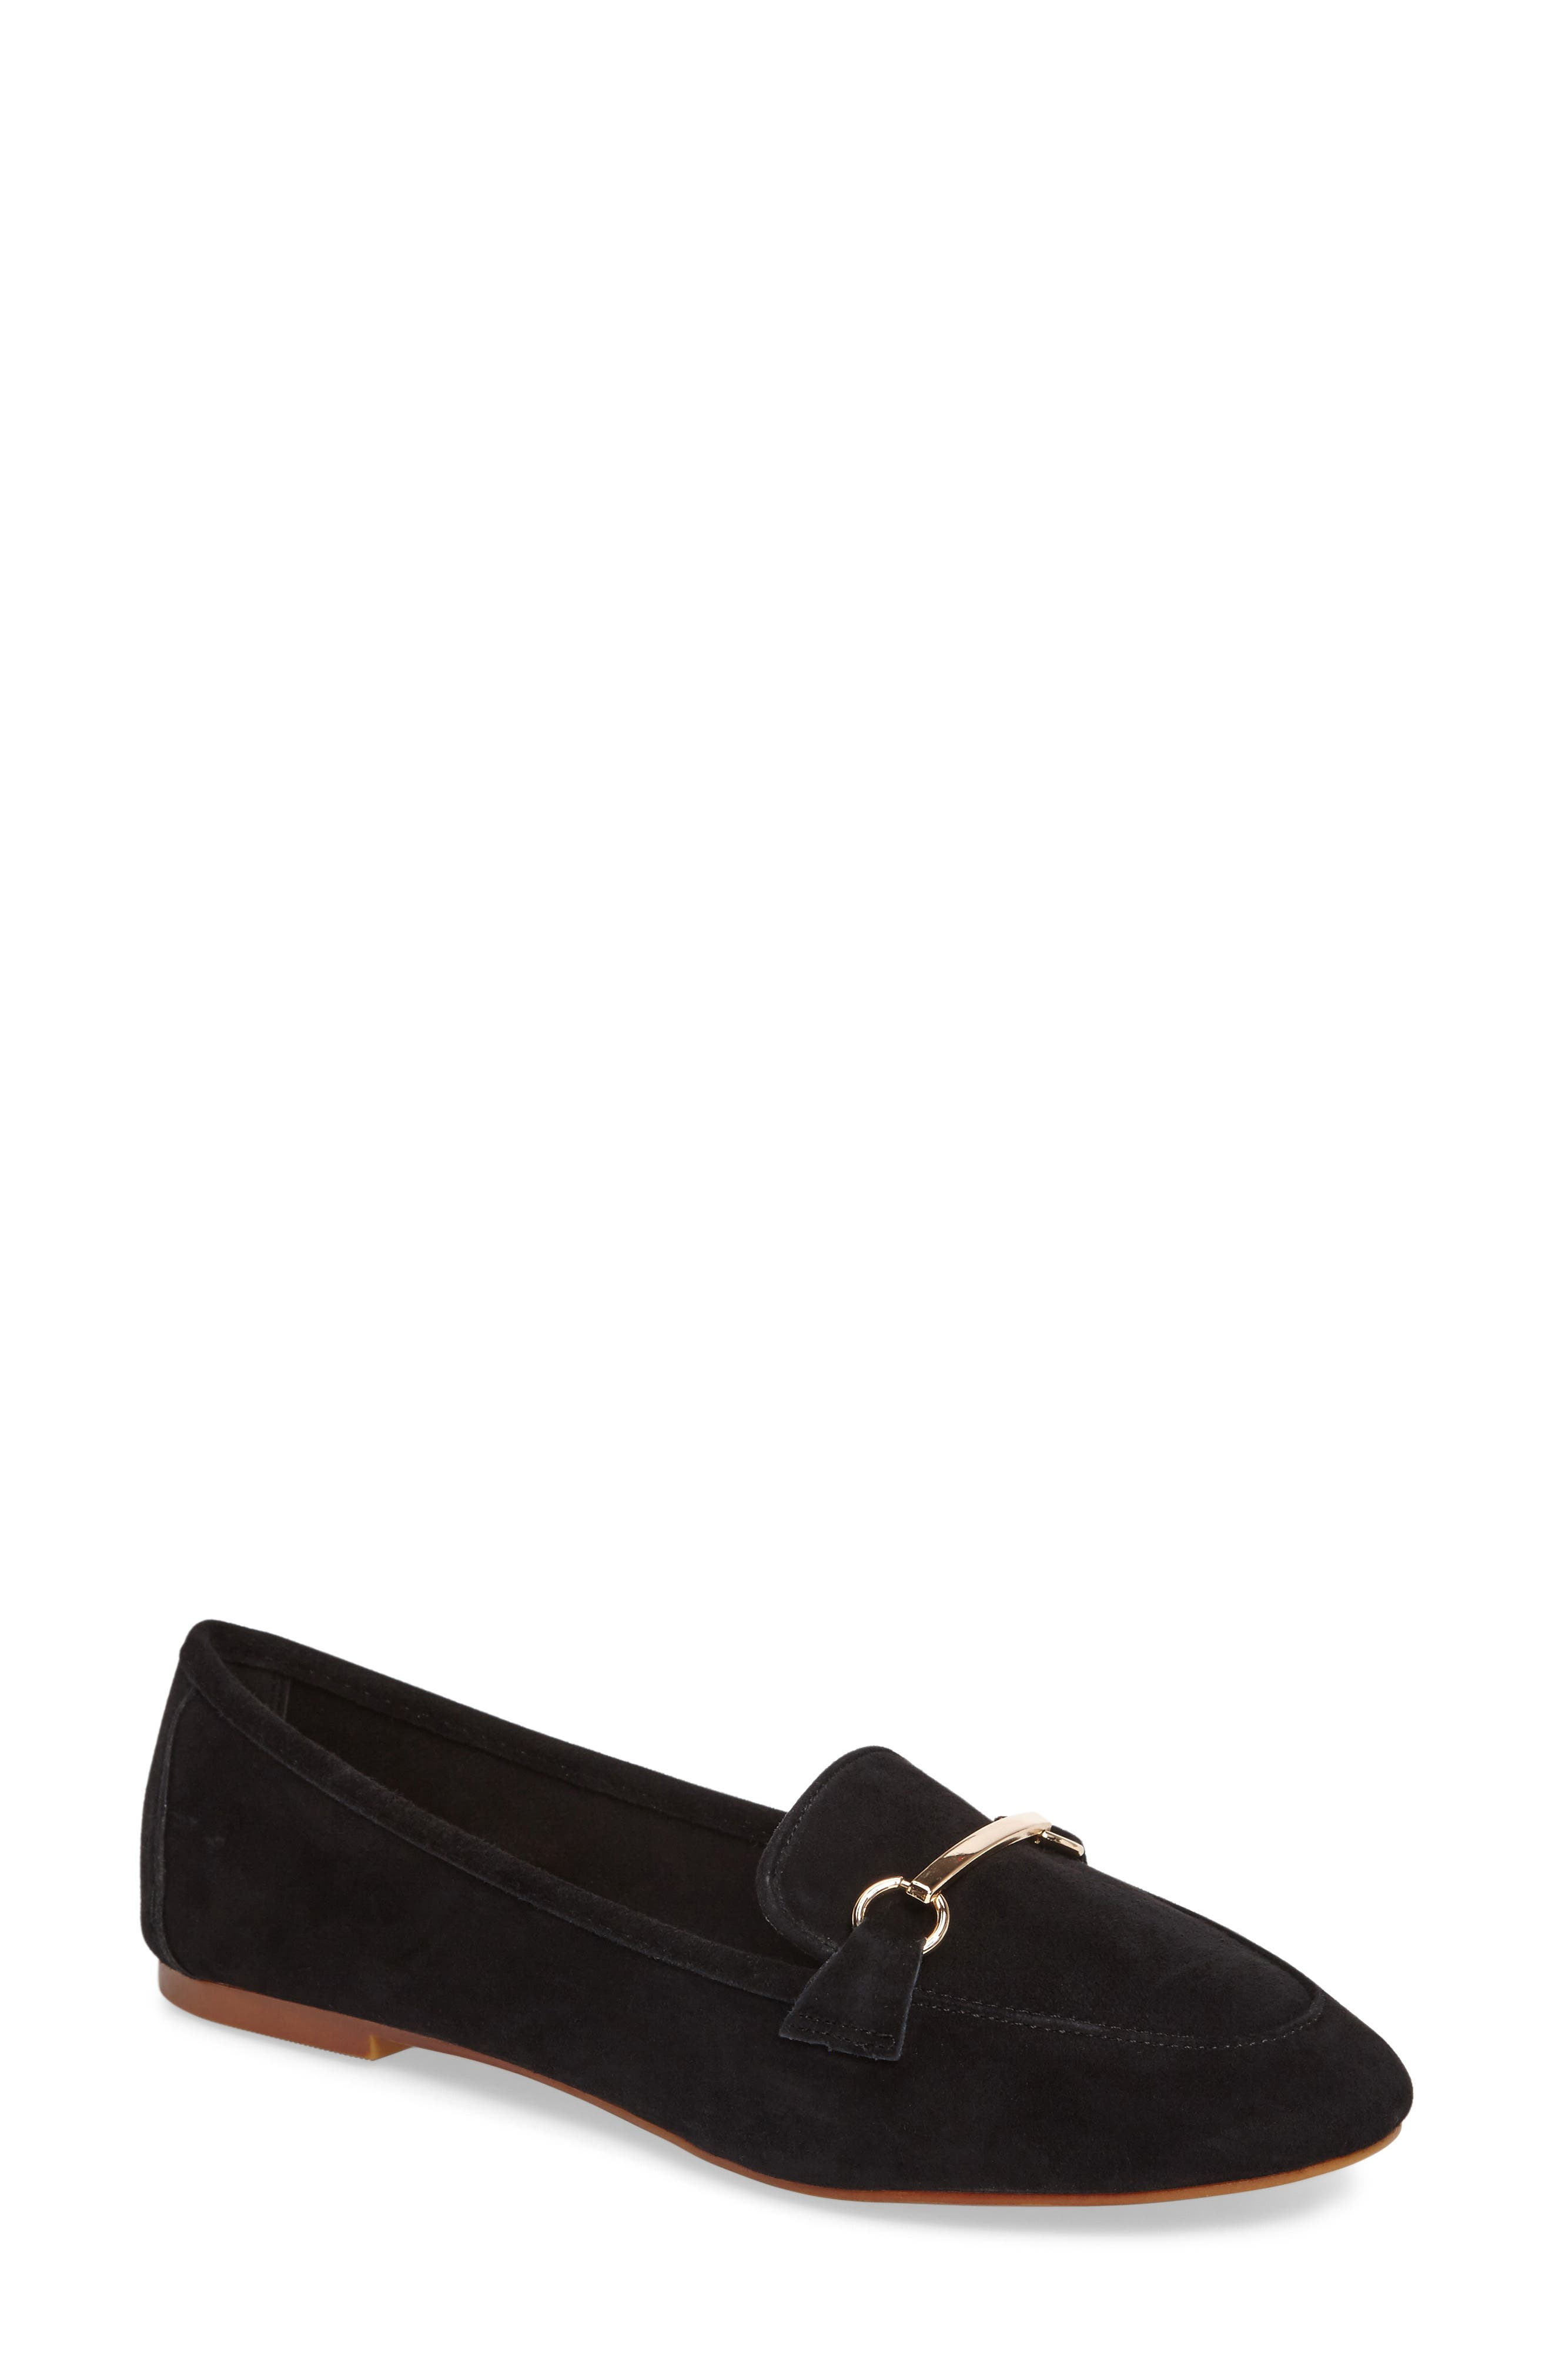 Libby Softy Loafer,                         Main,                         color, 001